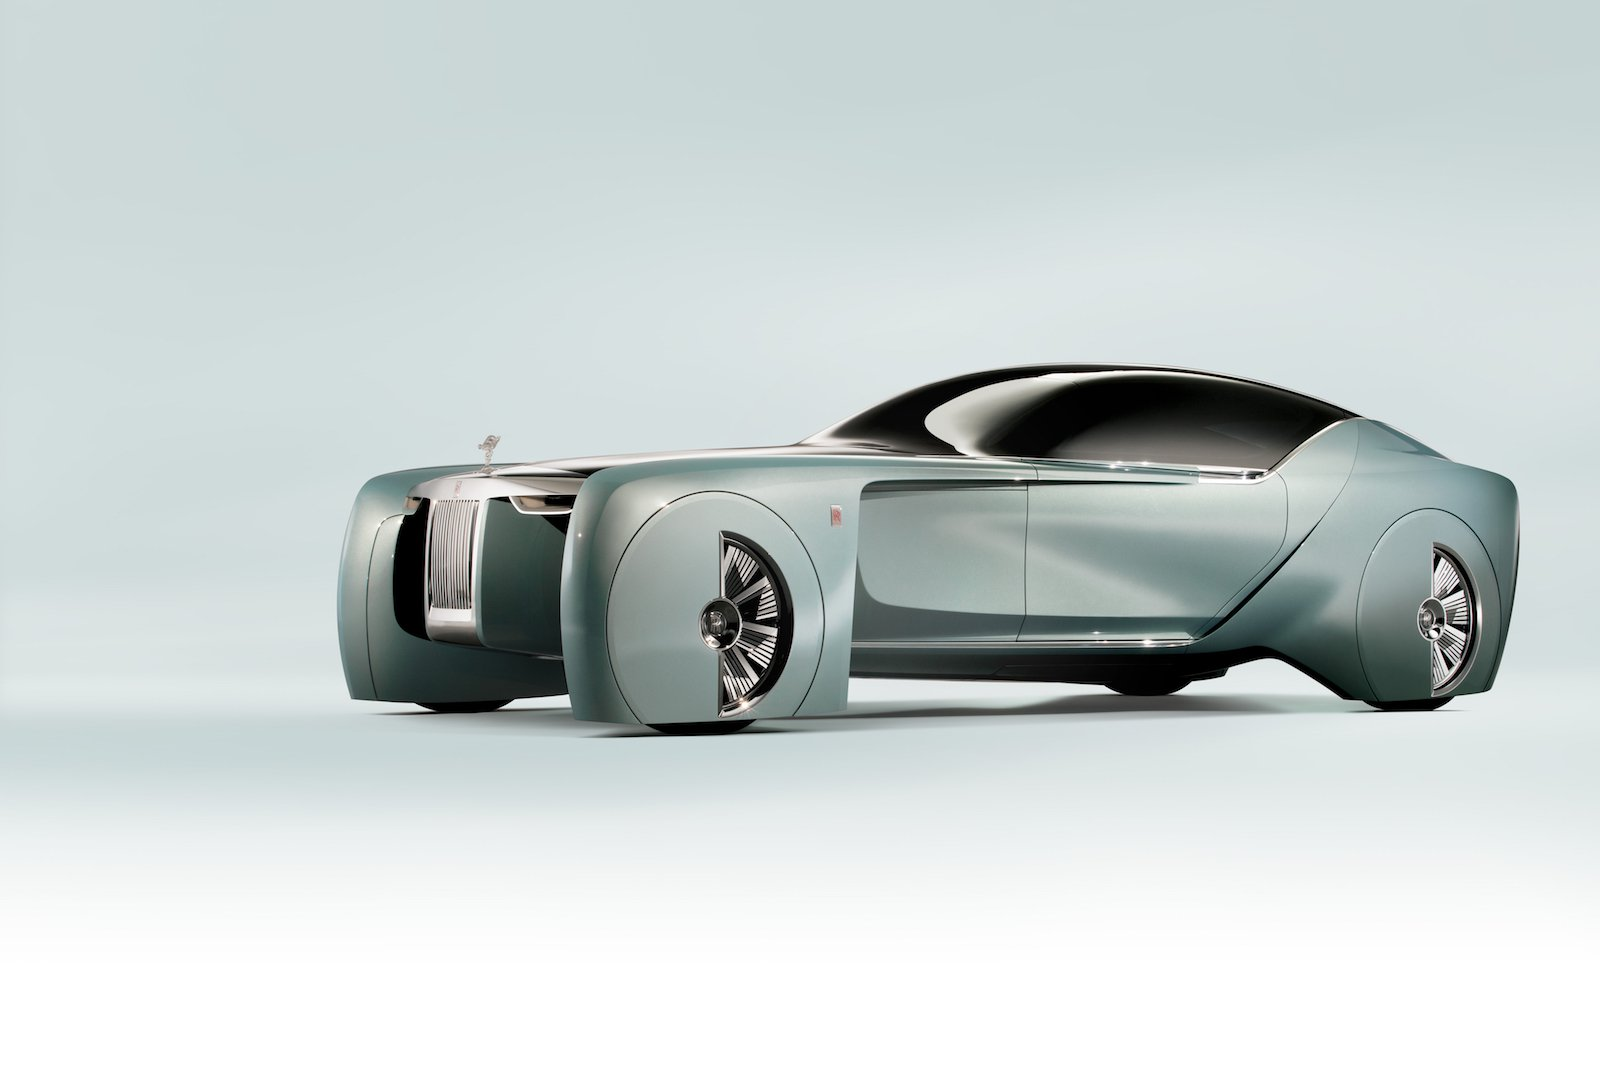 The Rolls-Royce of the Future Looks Insanely Outrageous